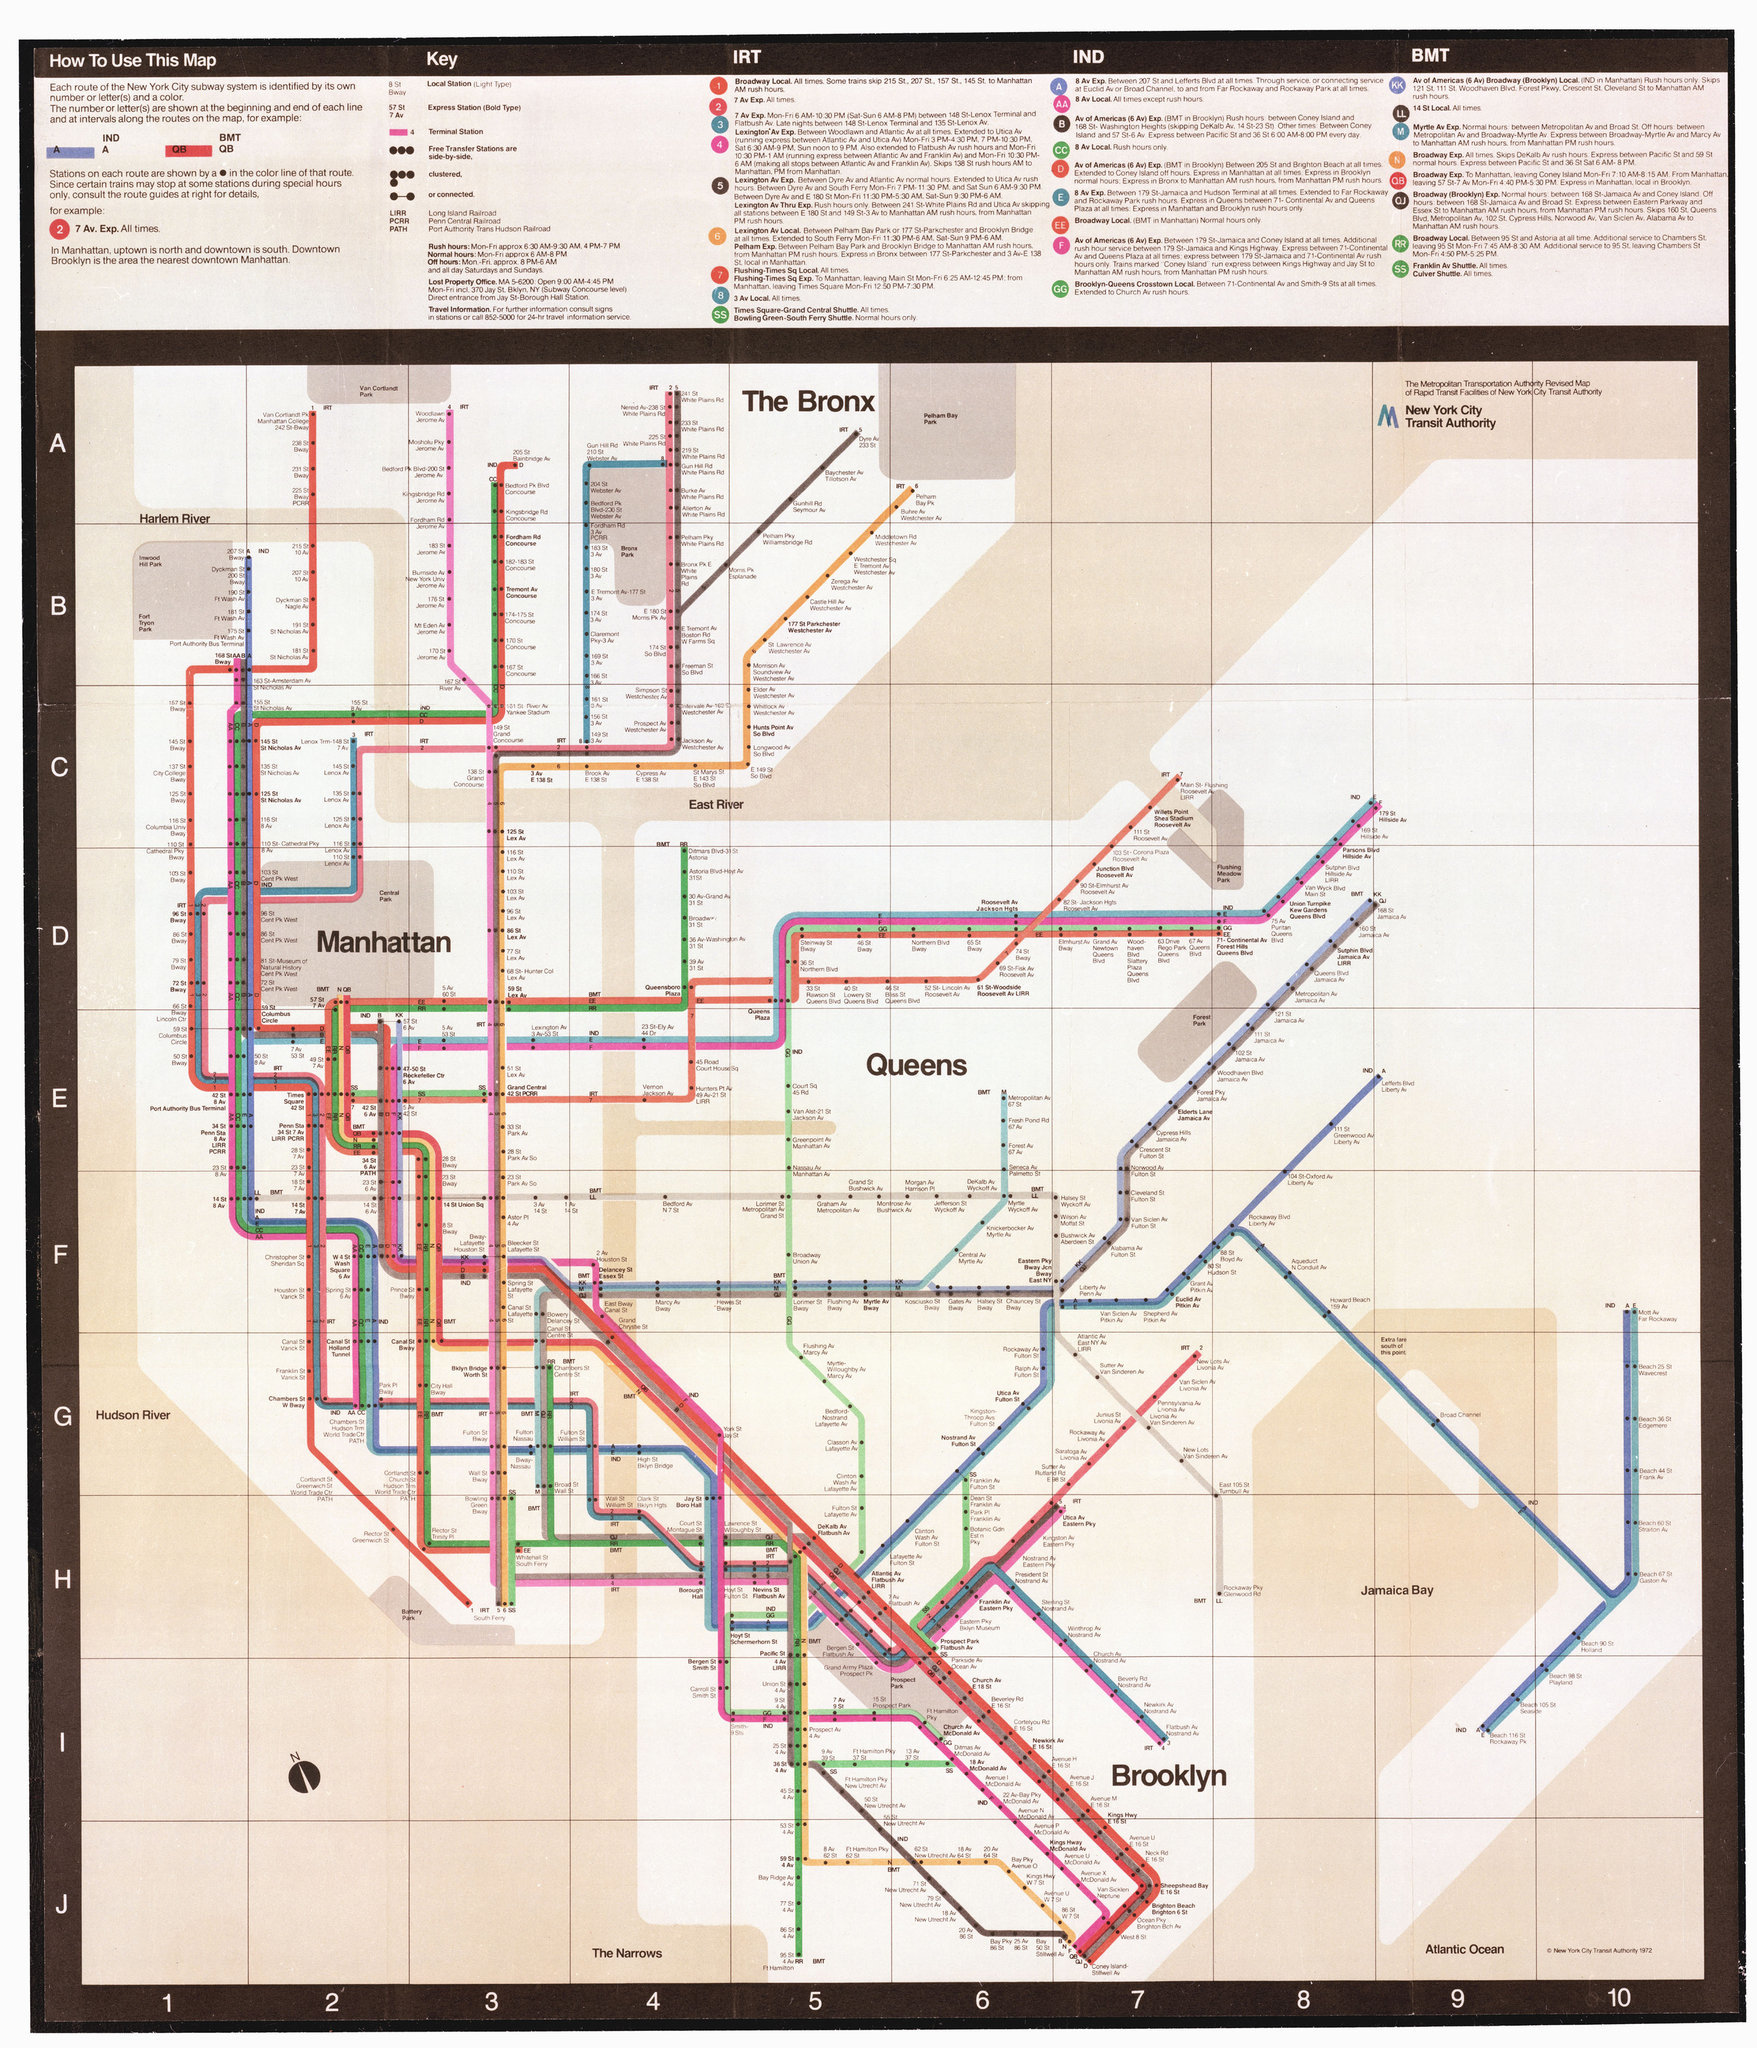 Massimo Vignelli's 1972 New York Subway Map